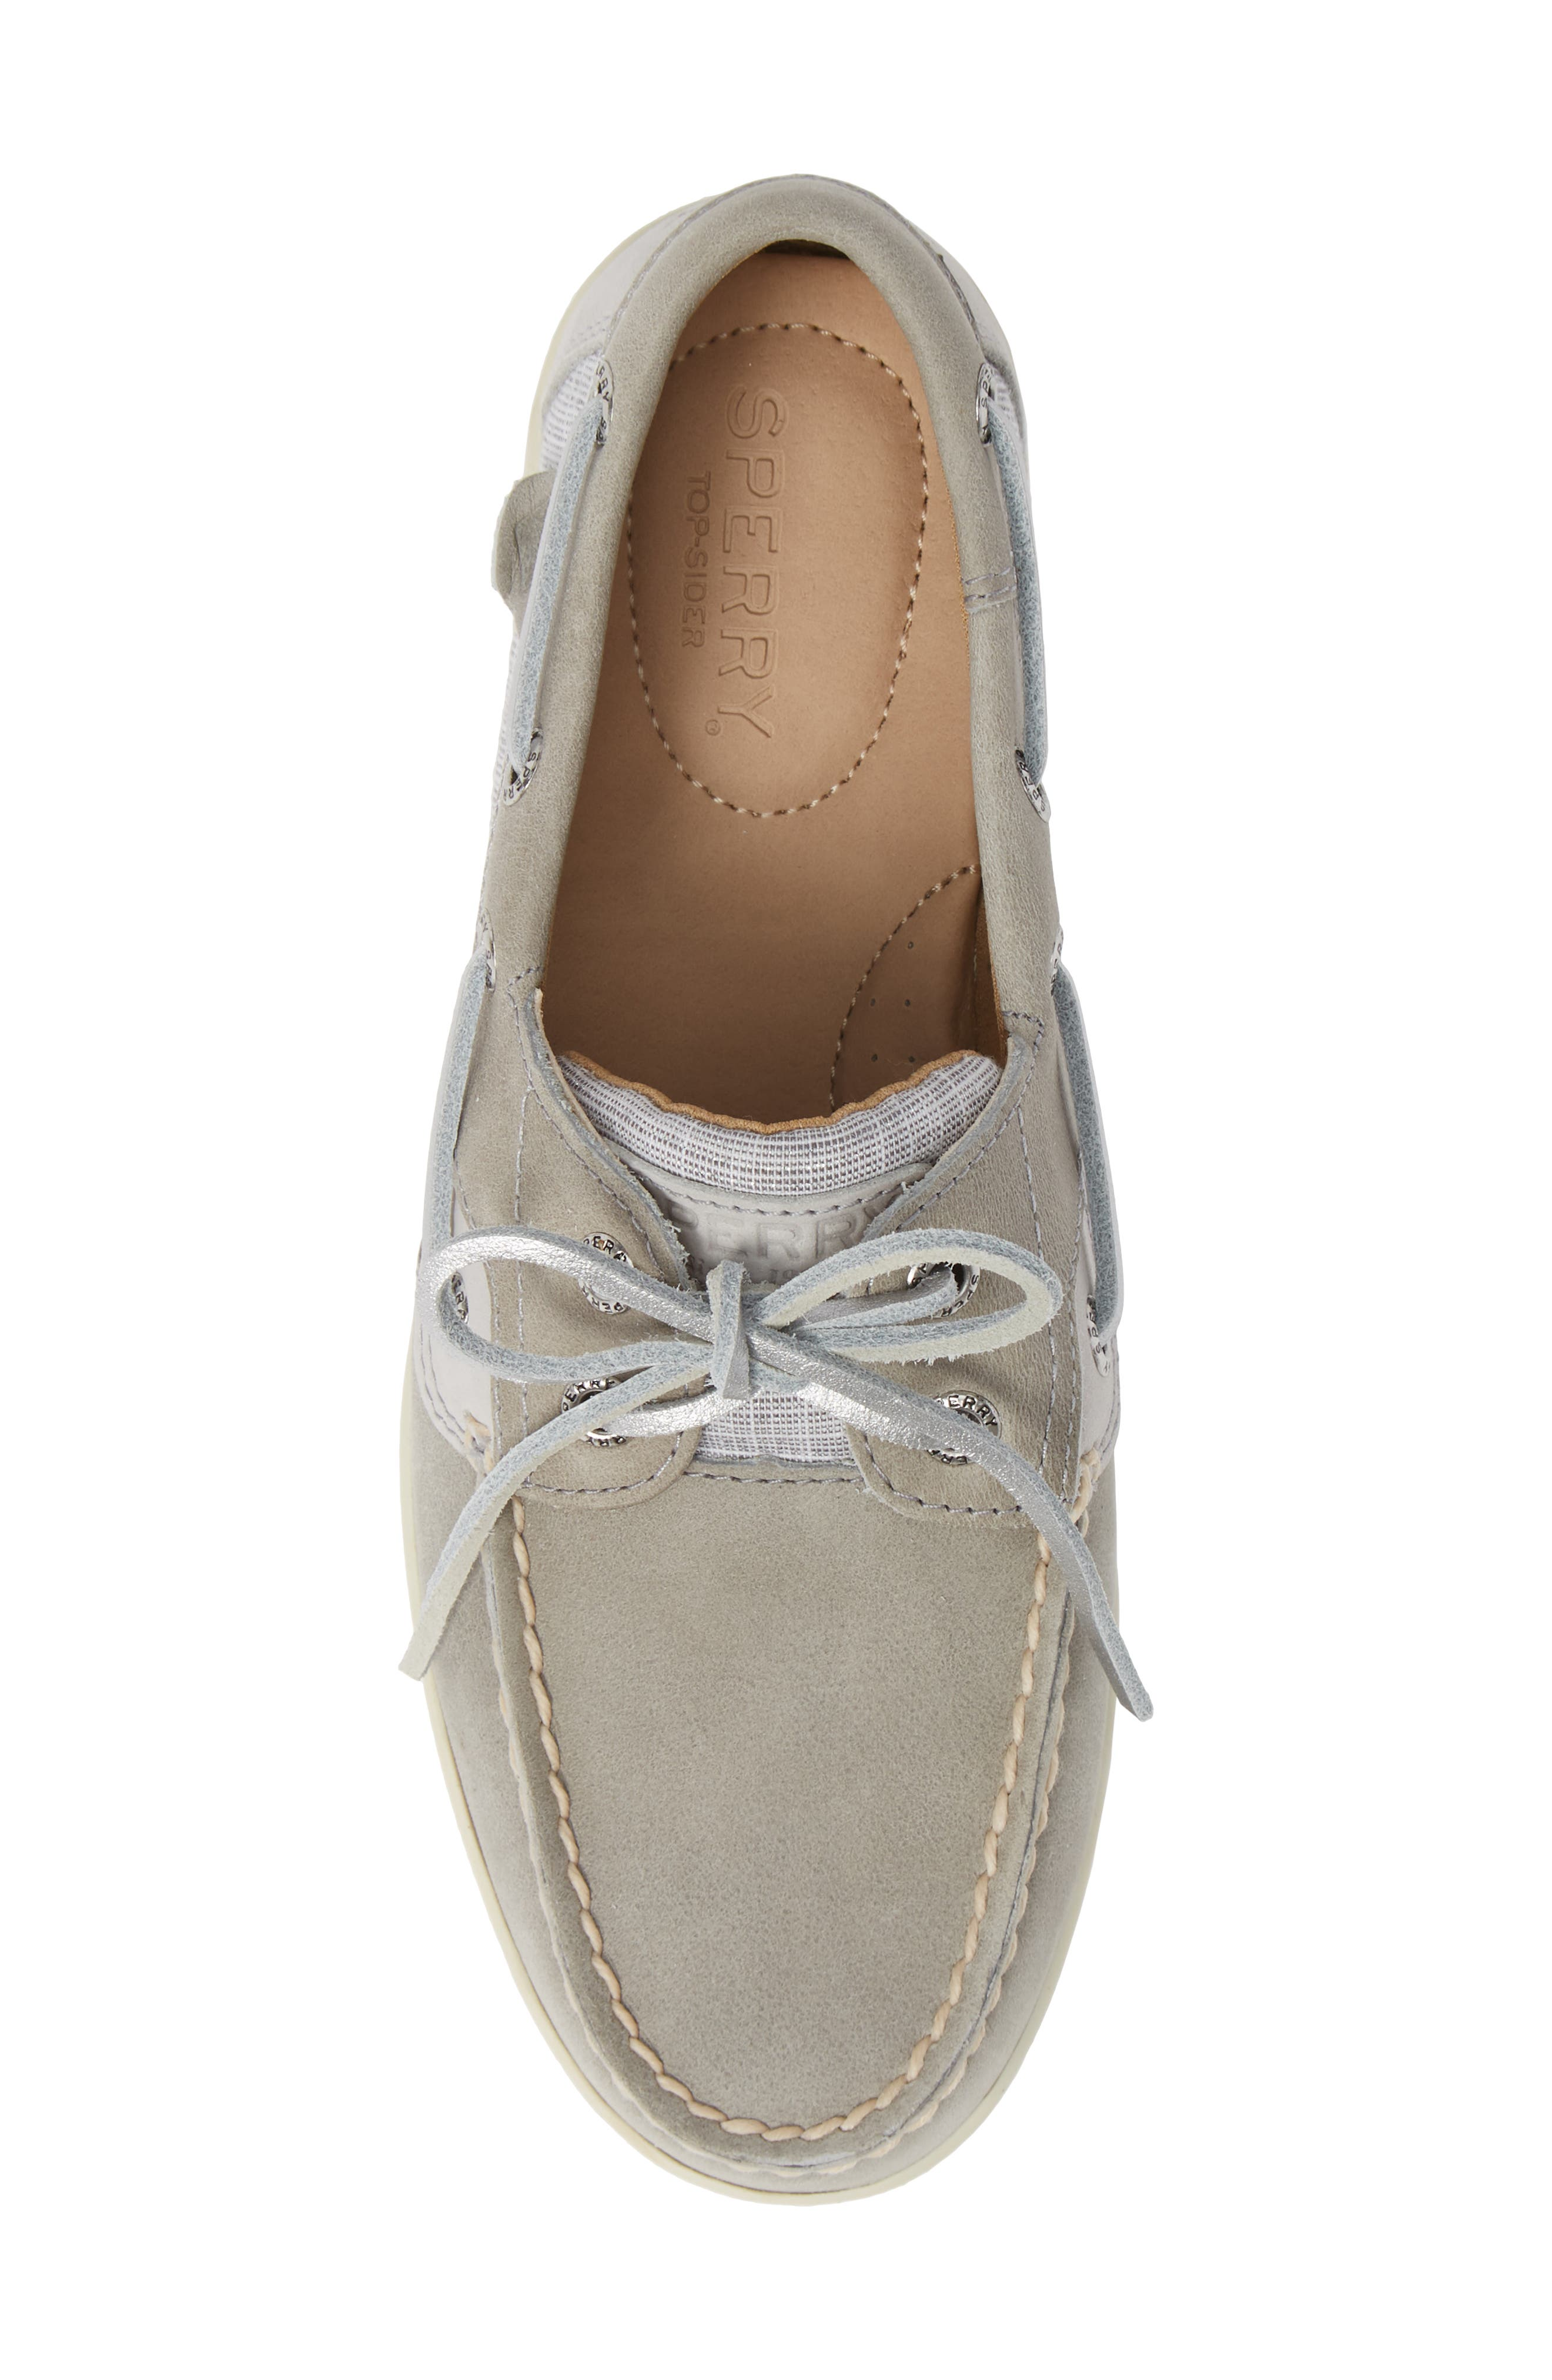 Top-Sider Koifish Loafer,                             Alternate thumbnail 5, color,                             GREY LEATHER